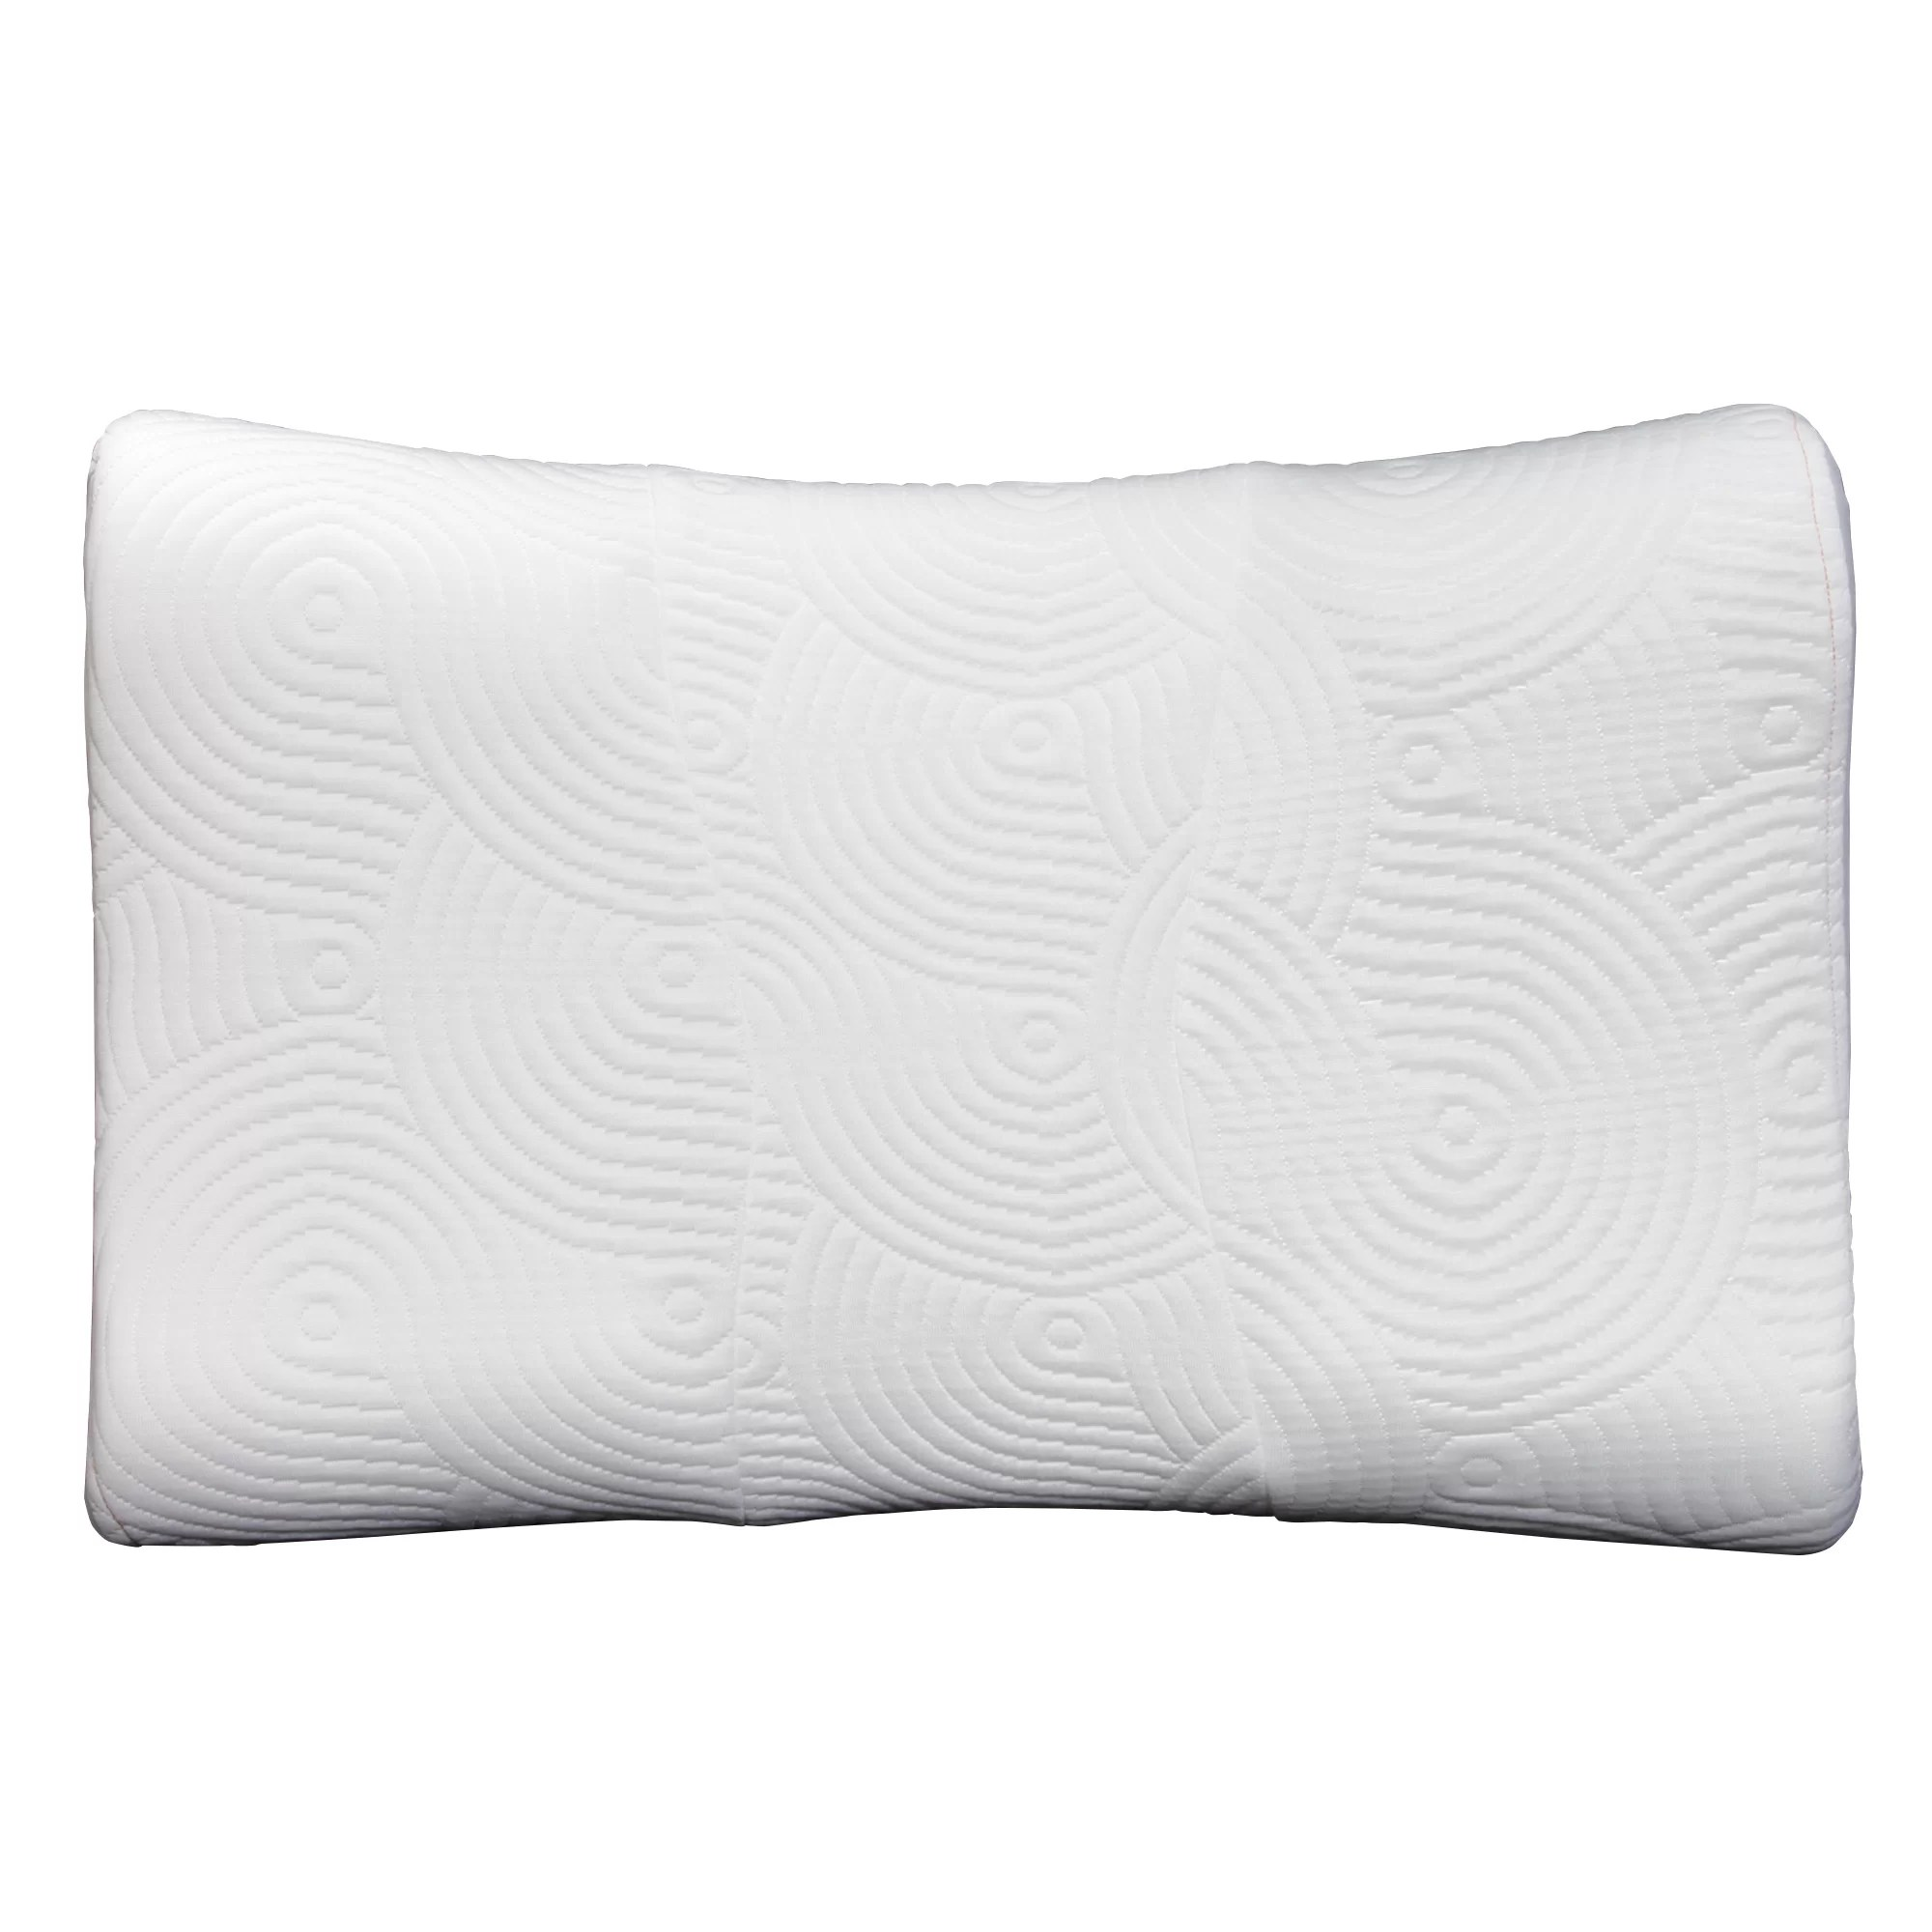 How To Use Tempurpedic Neck Pillow Tempur Ergo Advanced Neck Relief Firm Foam Queen Bed Pillow